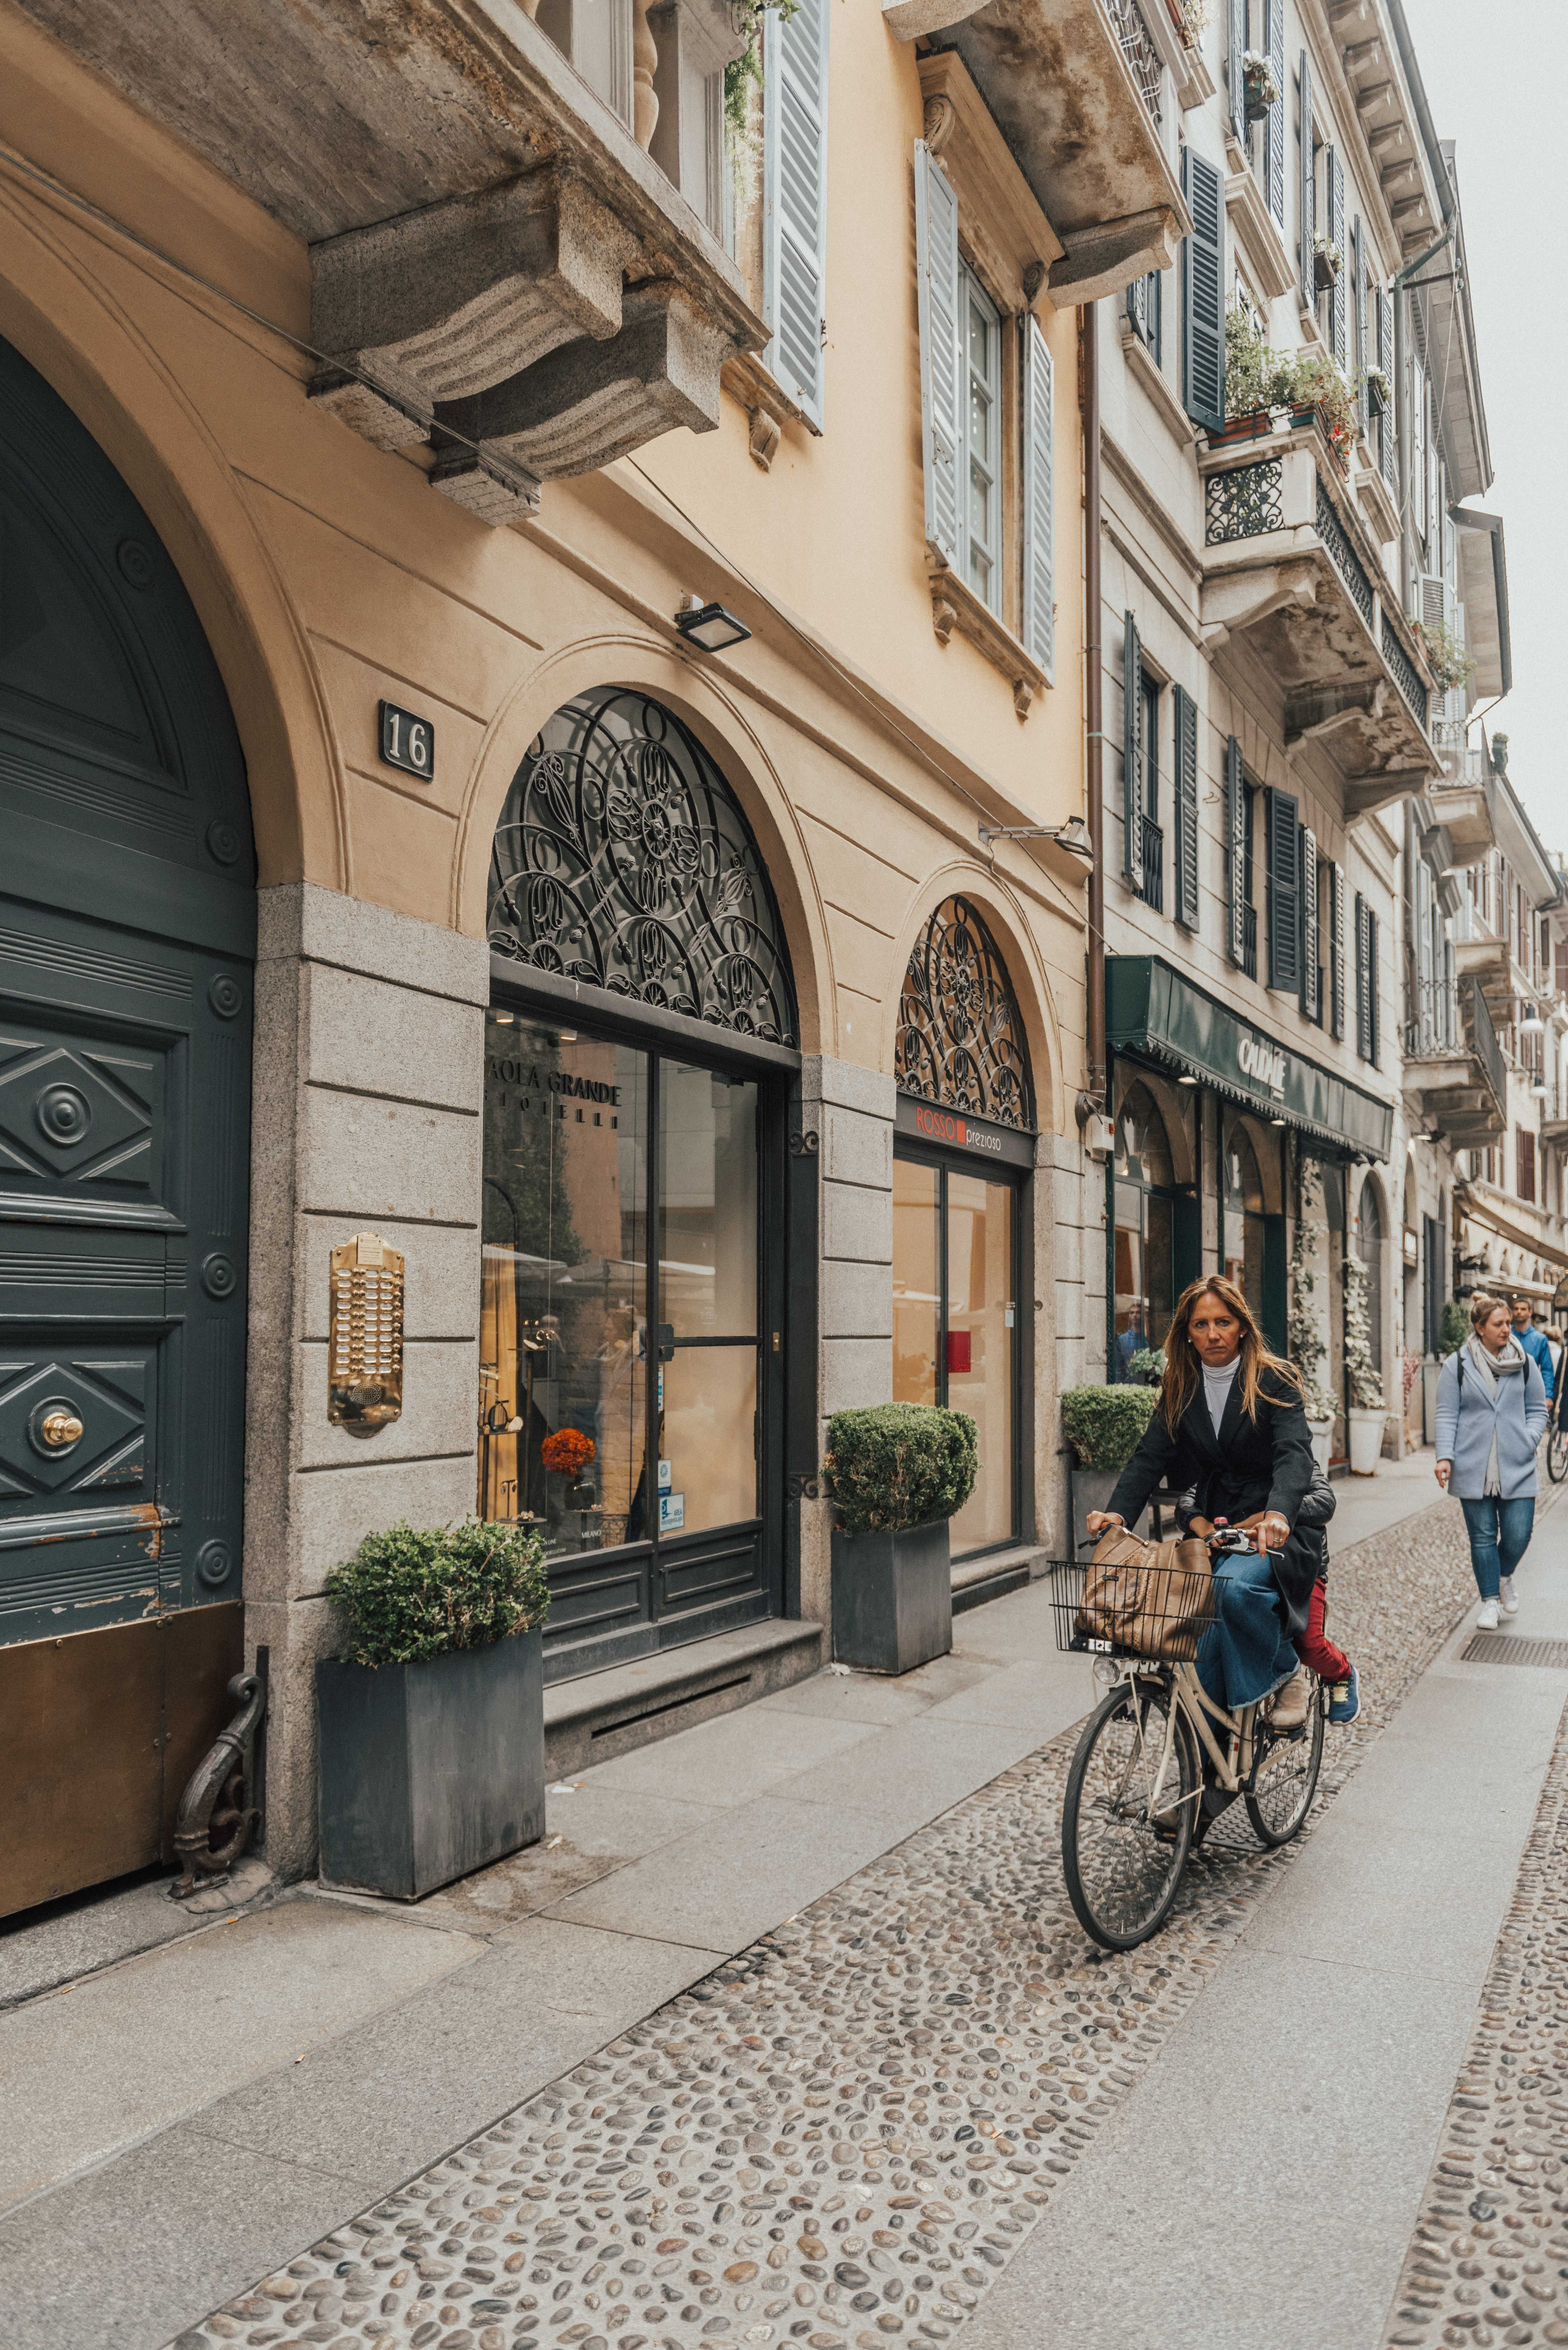 Milan Travel Guide | If you're heading to Milan Italy check out this guide for Milan travel tips Milan photography Milan street style and so much more! #MilanTravel #ItalyPhotography #ItalyTravel #traveltips #travel #tips #italy